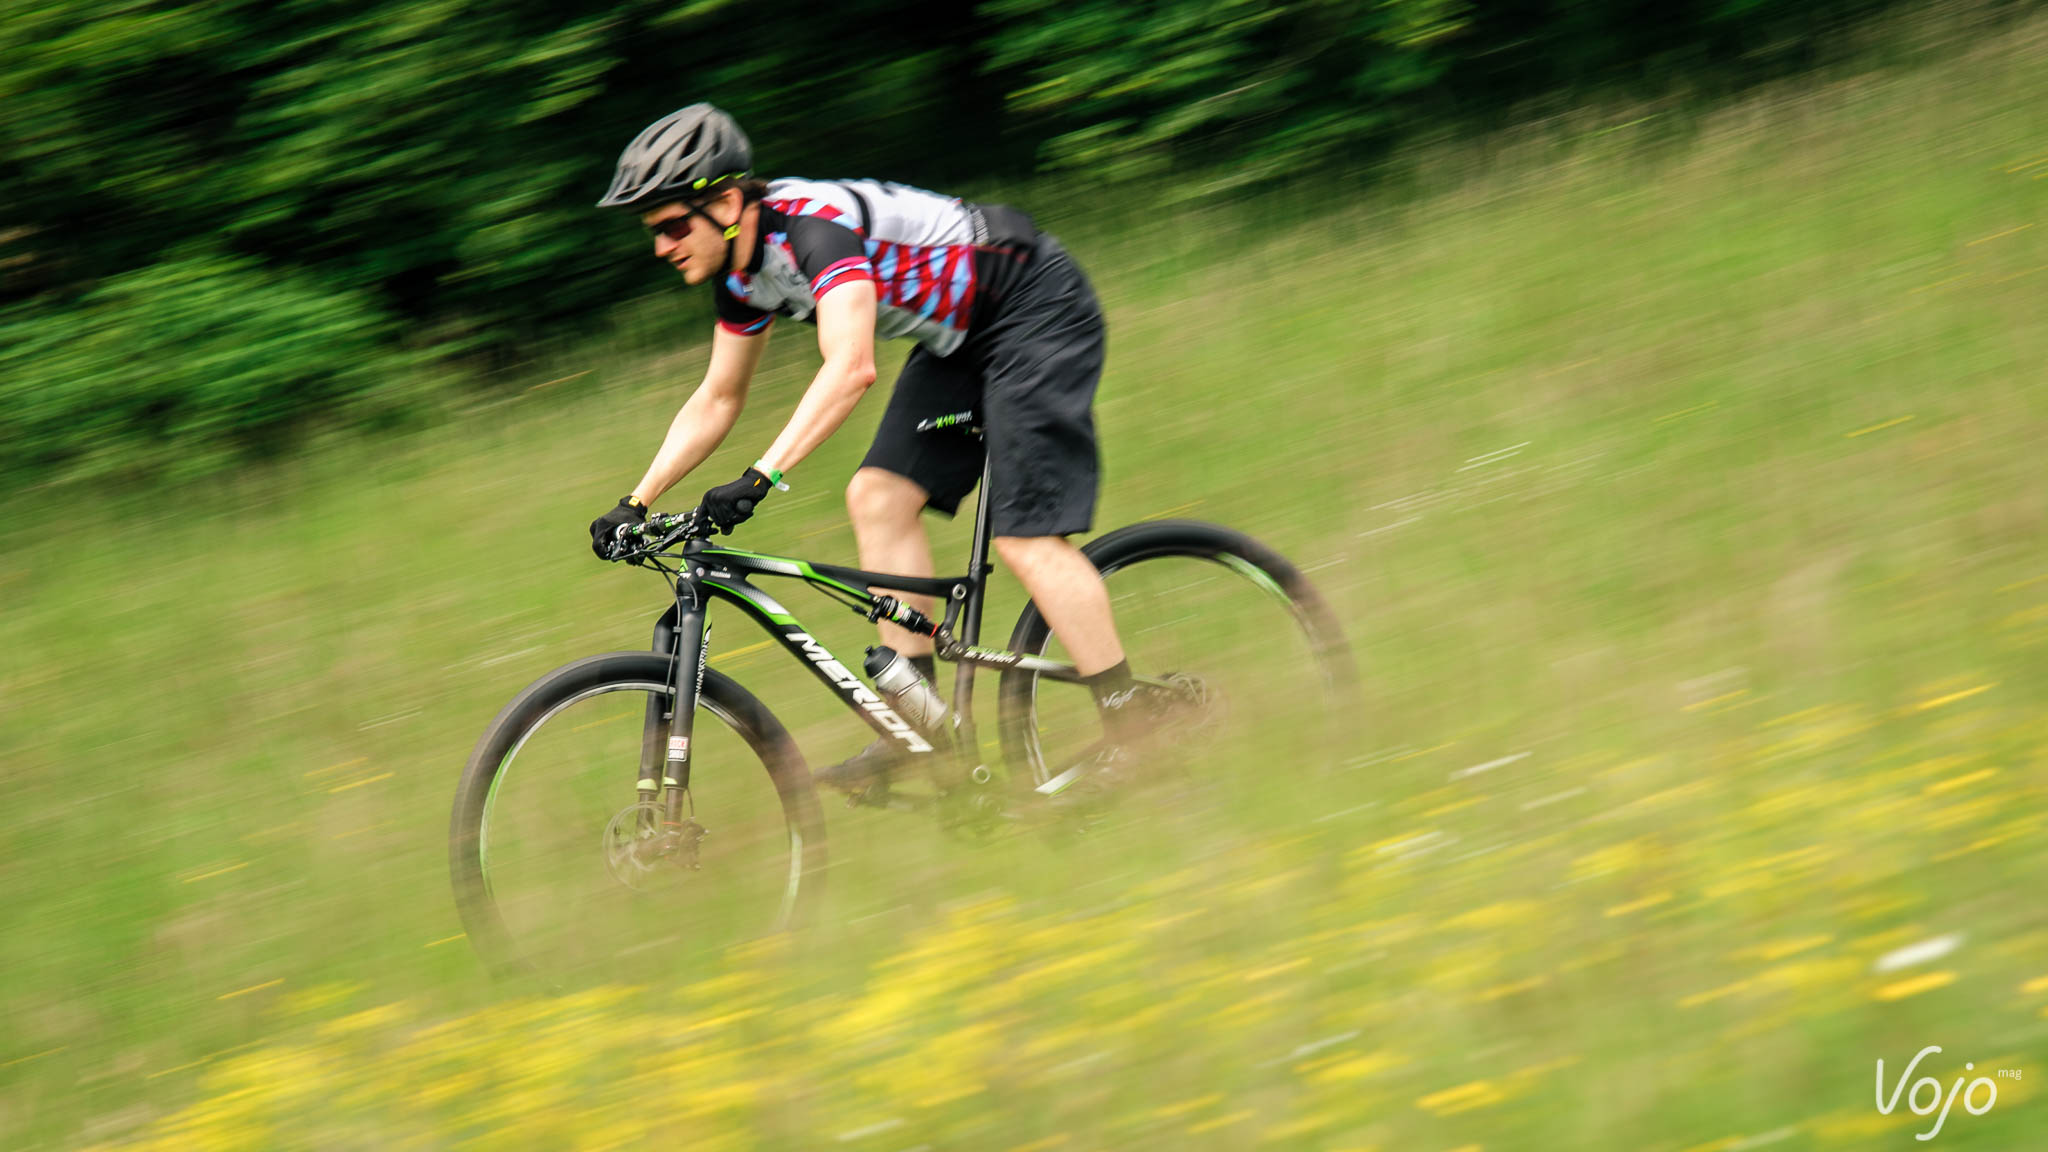 Merida_96_nouveaute_2016_Action_test_Copyright_MTBCult_OBeart_VojoMag-1